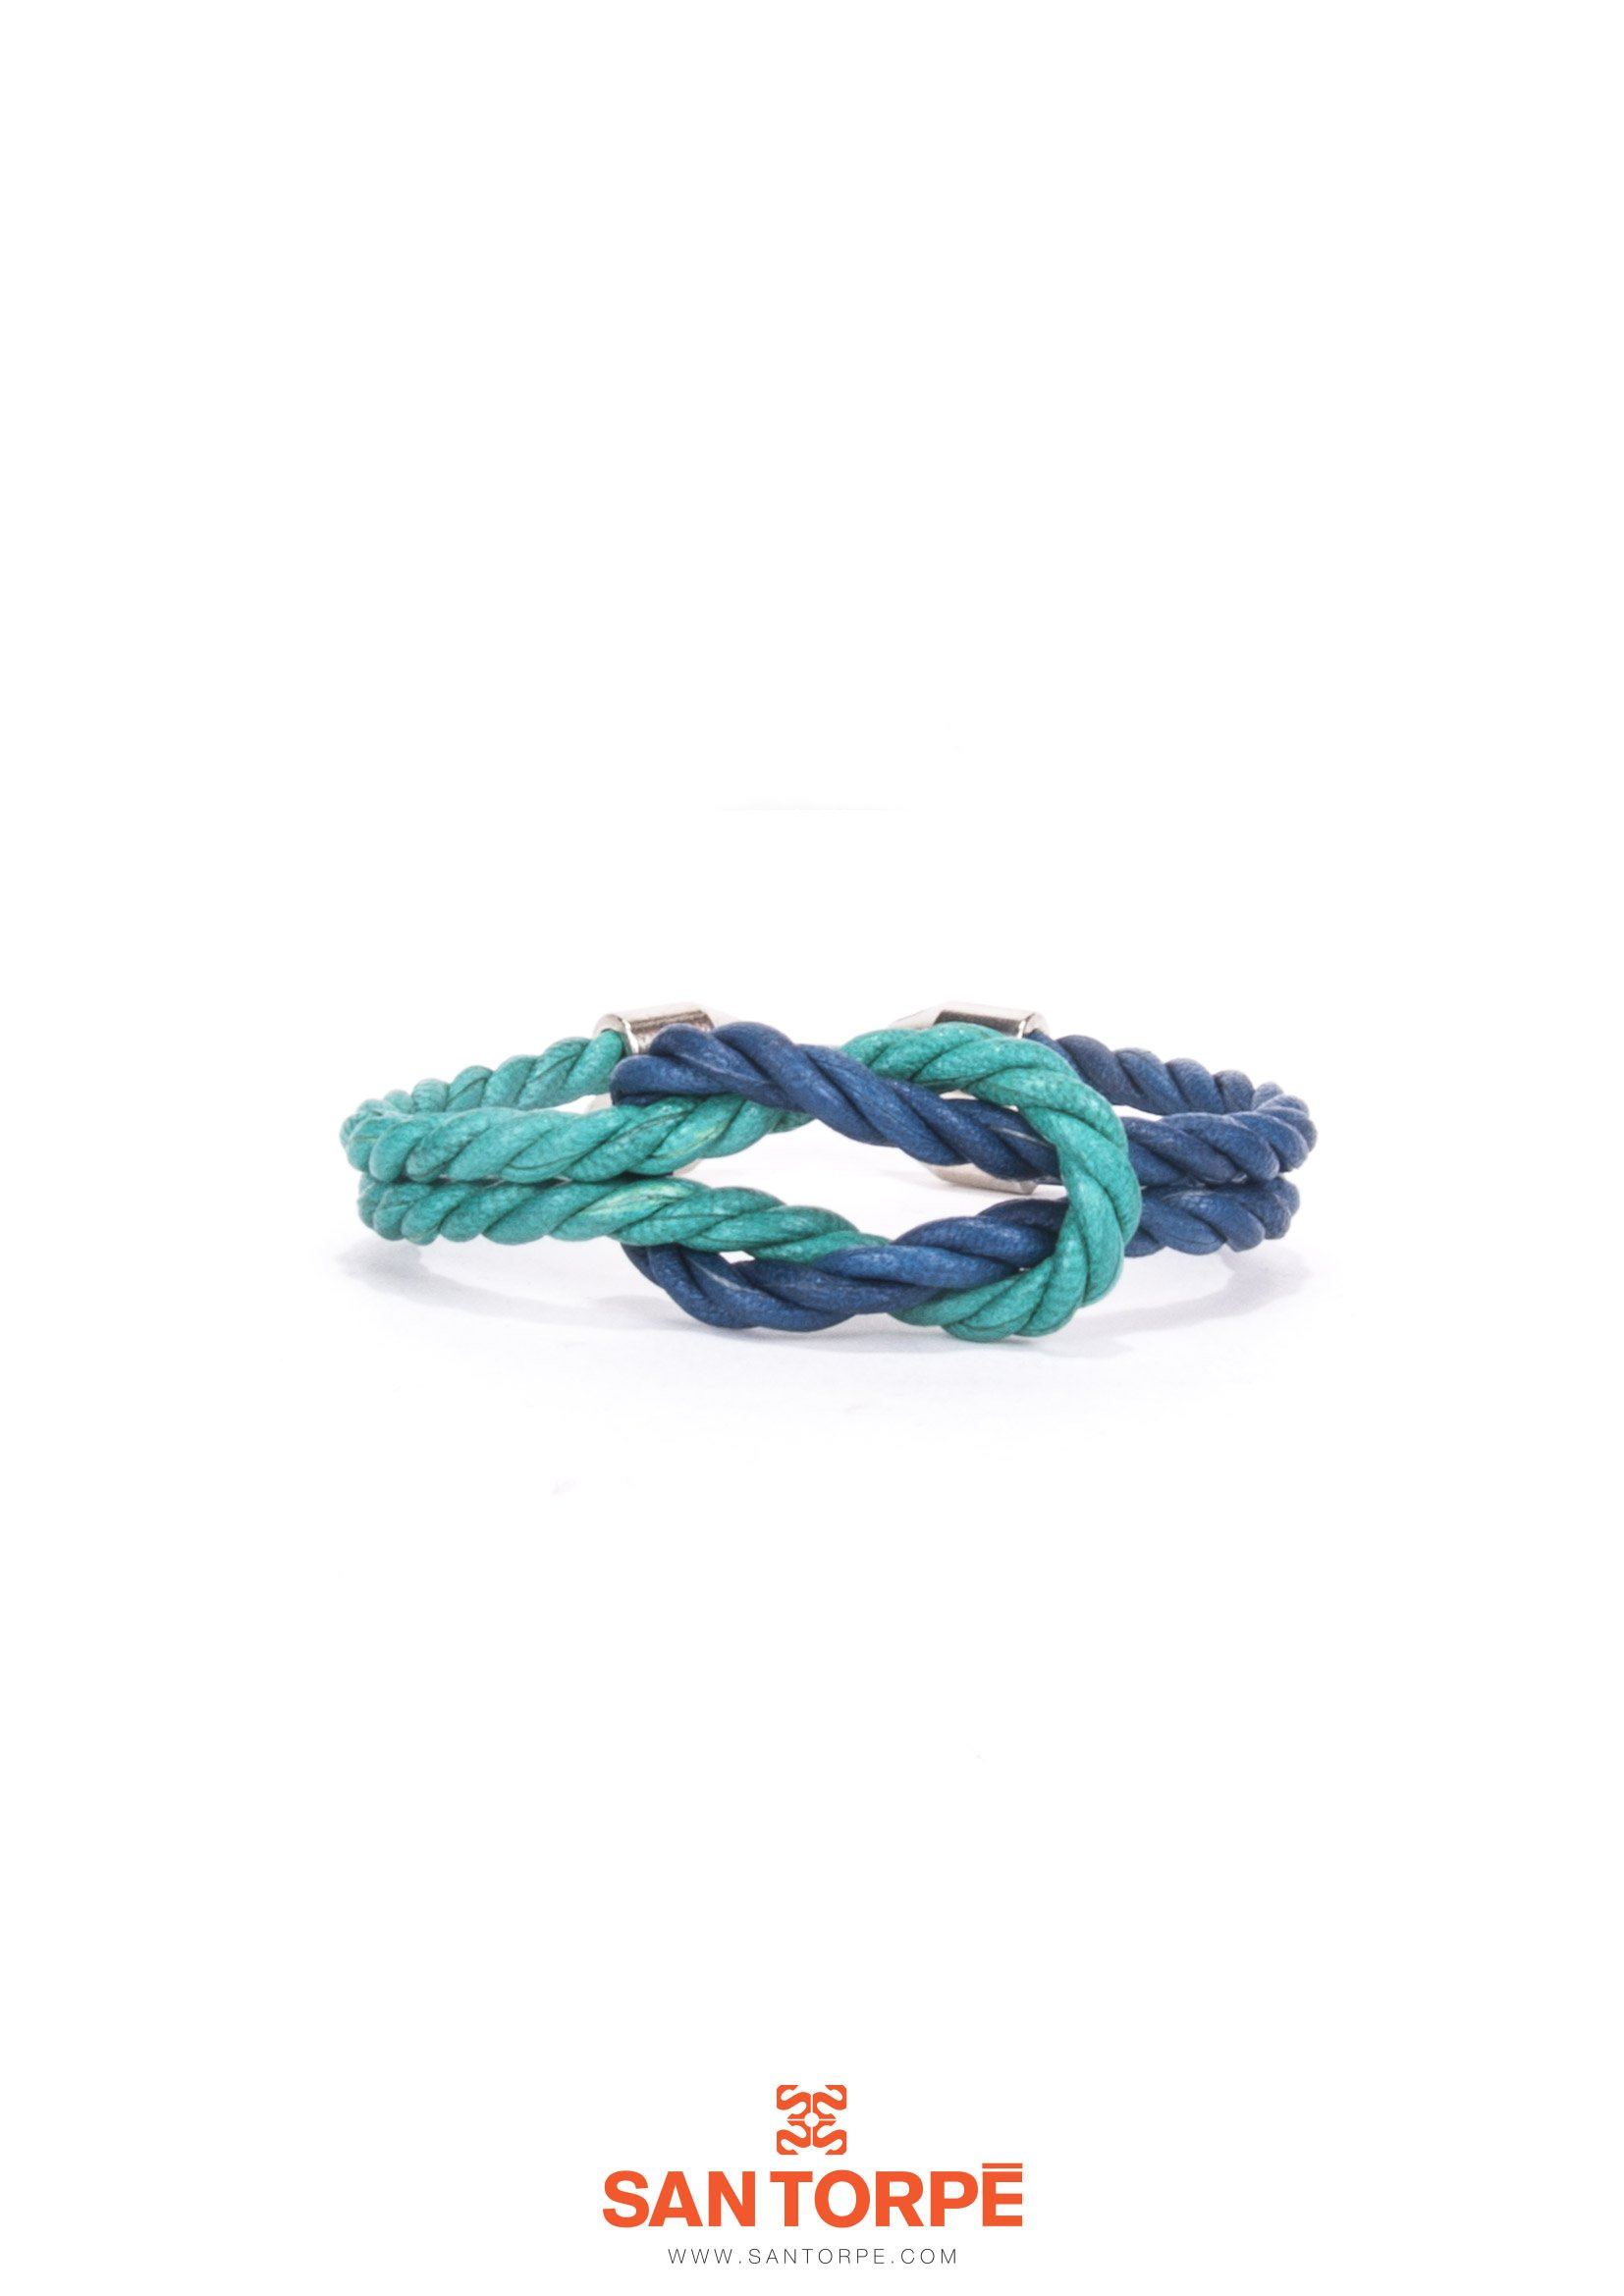 PANAREA / CAPRI BLUE LEATHER BRACELET-0